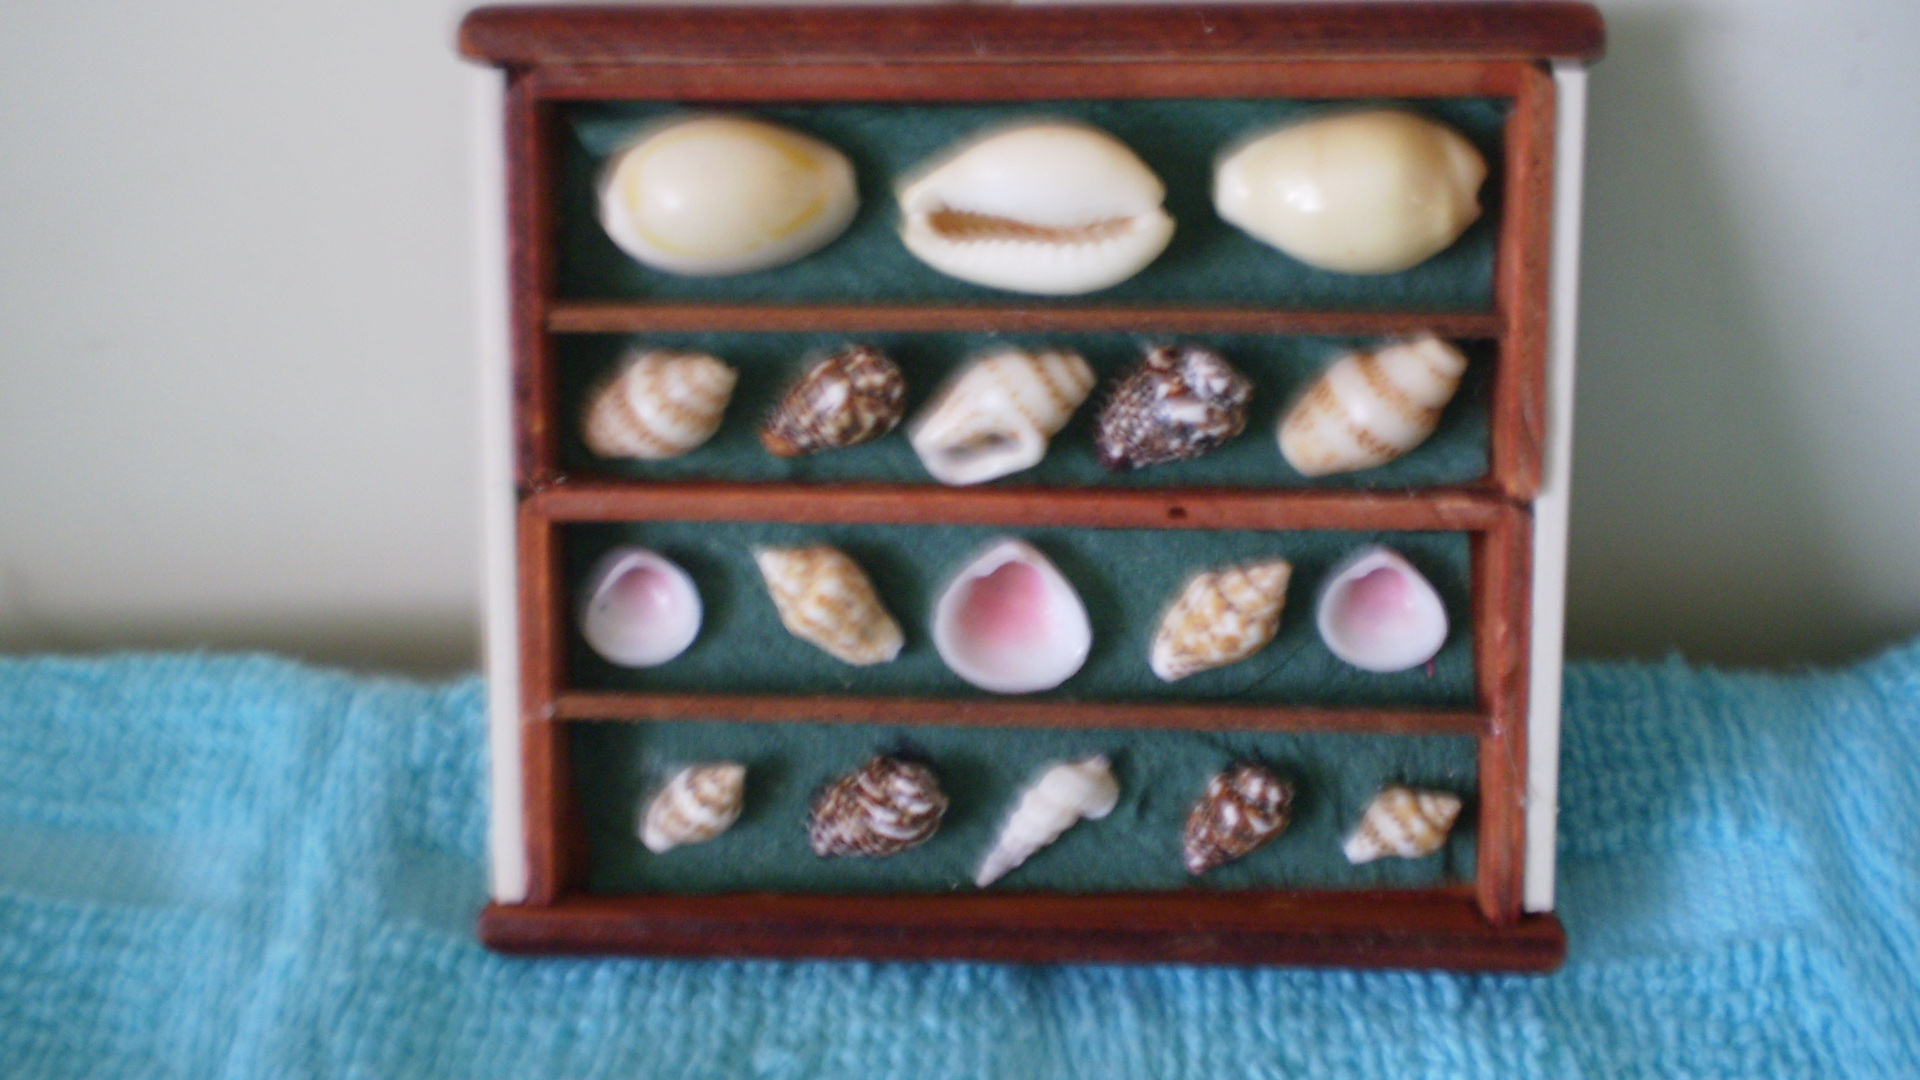 Shell display box from two lonely drawers.